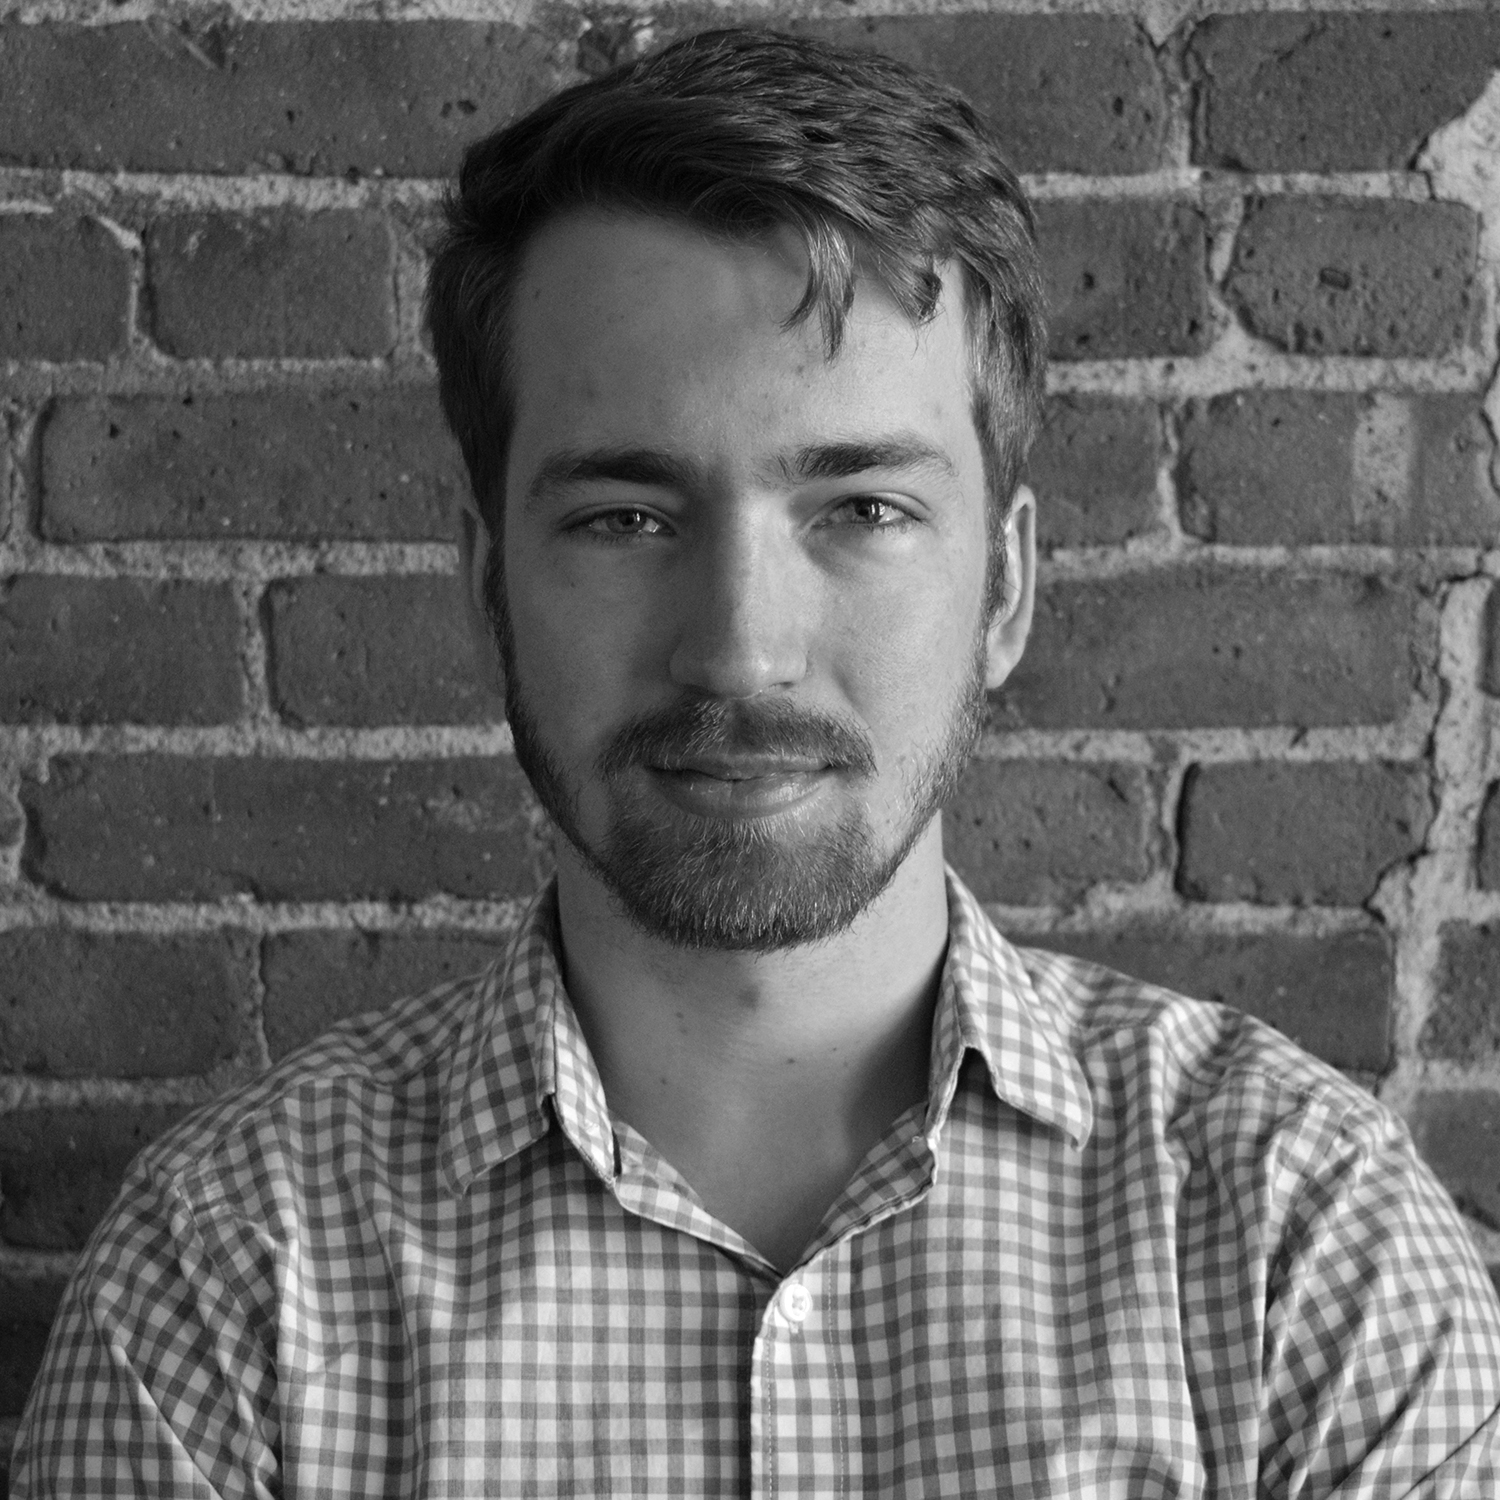 Greg TaschukLEAD ENGINEER - Greg is a software engineer who takes pride in building concepts into stable systems that support millions of users. He has worked at several startups including StellaService, Jobsuitors, and more.Greg is deeply interested in Ethereum, blockchain more generally, and the opportunities for disintermediation and collaboration that they provide.Greg has a B.S in Engineering and a B.A. in Computer Science from Swarthmore College.